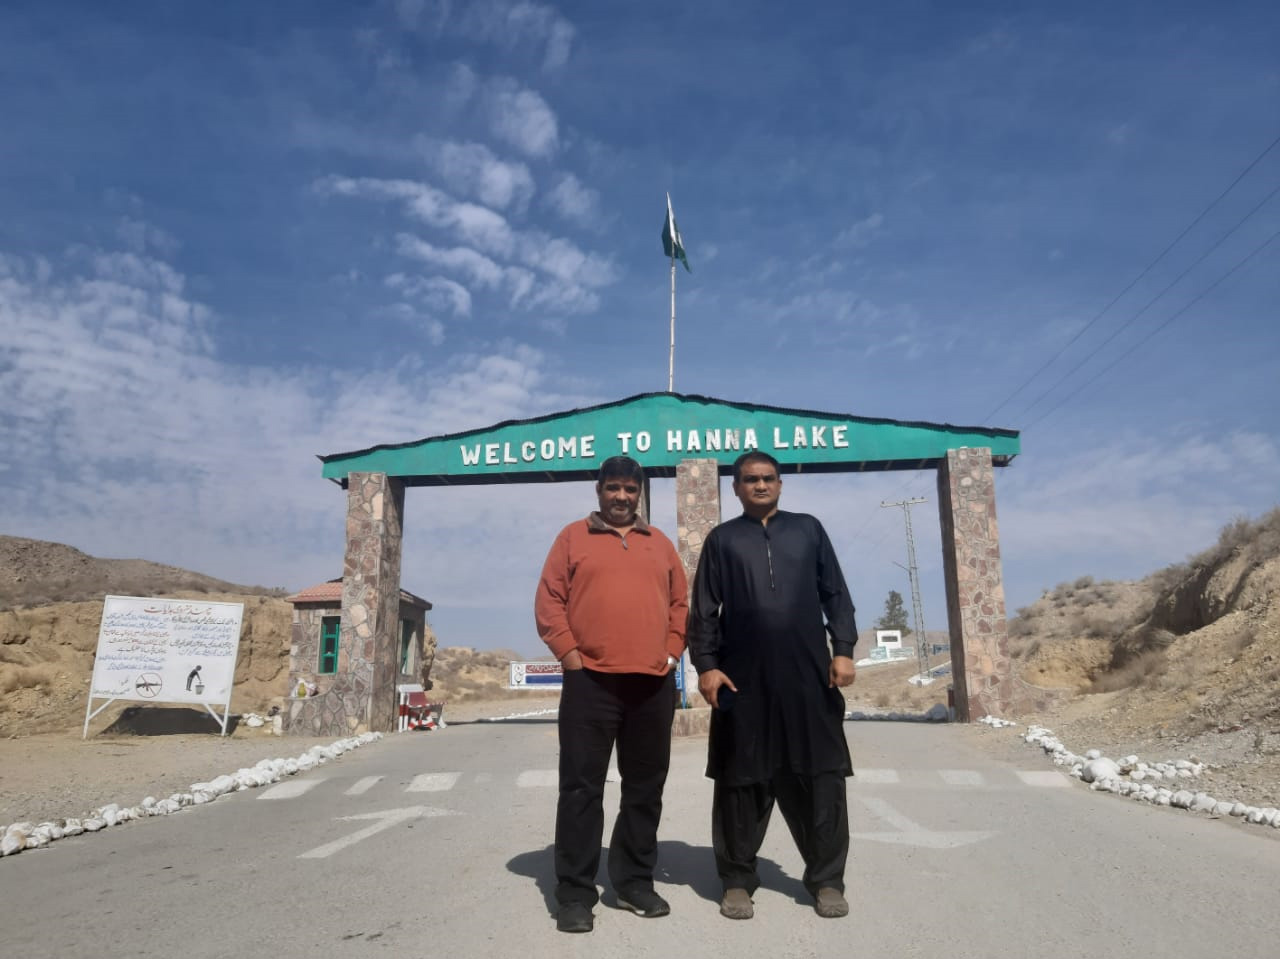 Imran and Adnan posing in front of Hanna Lake entrance gate.